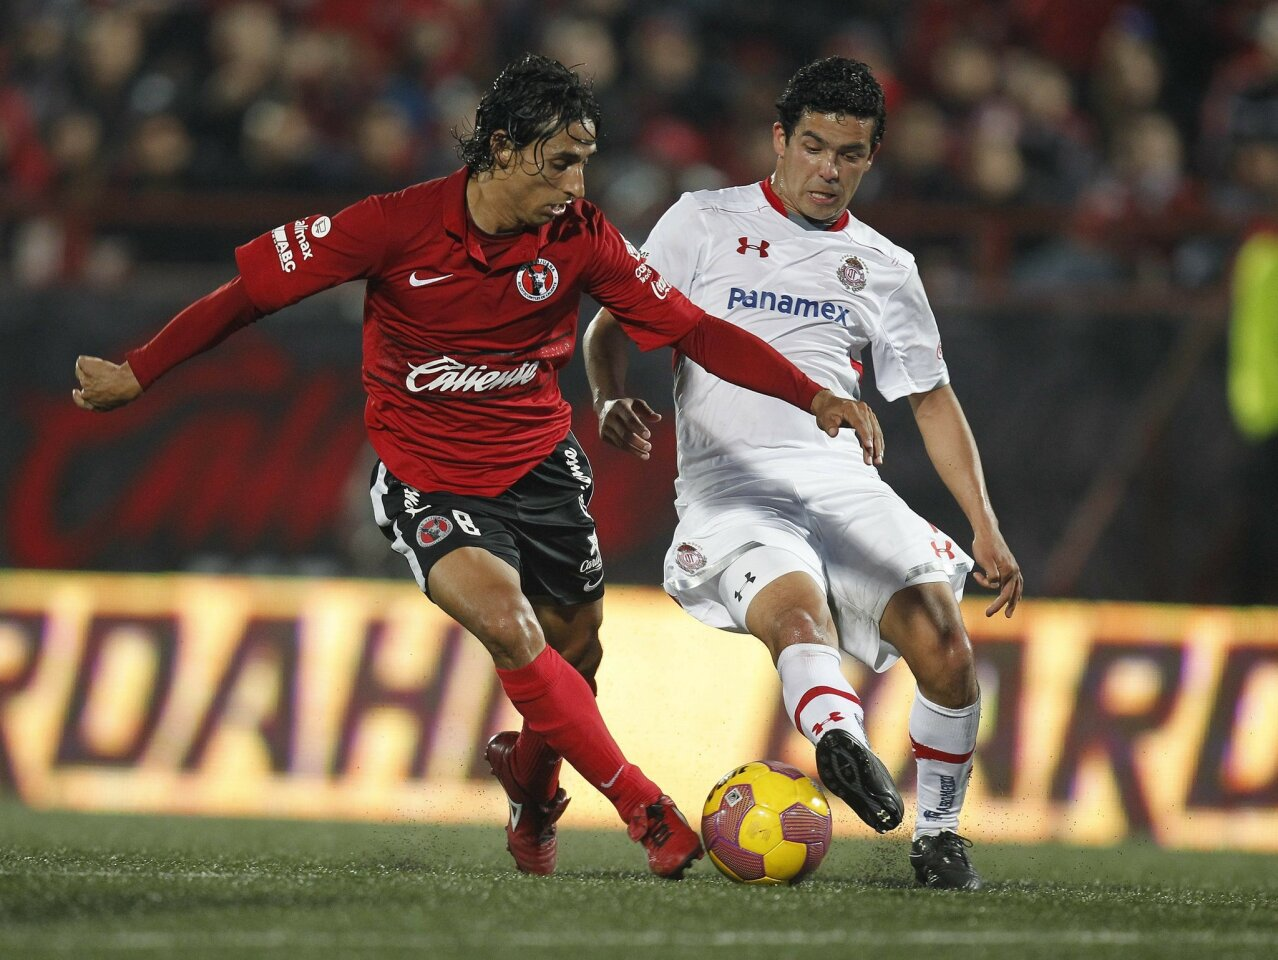 LtoR Club Tijuana #8 Fernando Arce battles for position with #19 of Toluca in the second half.